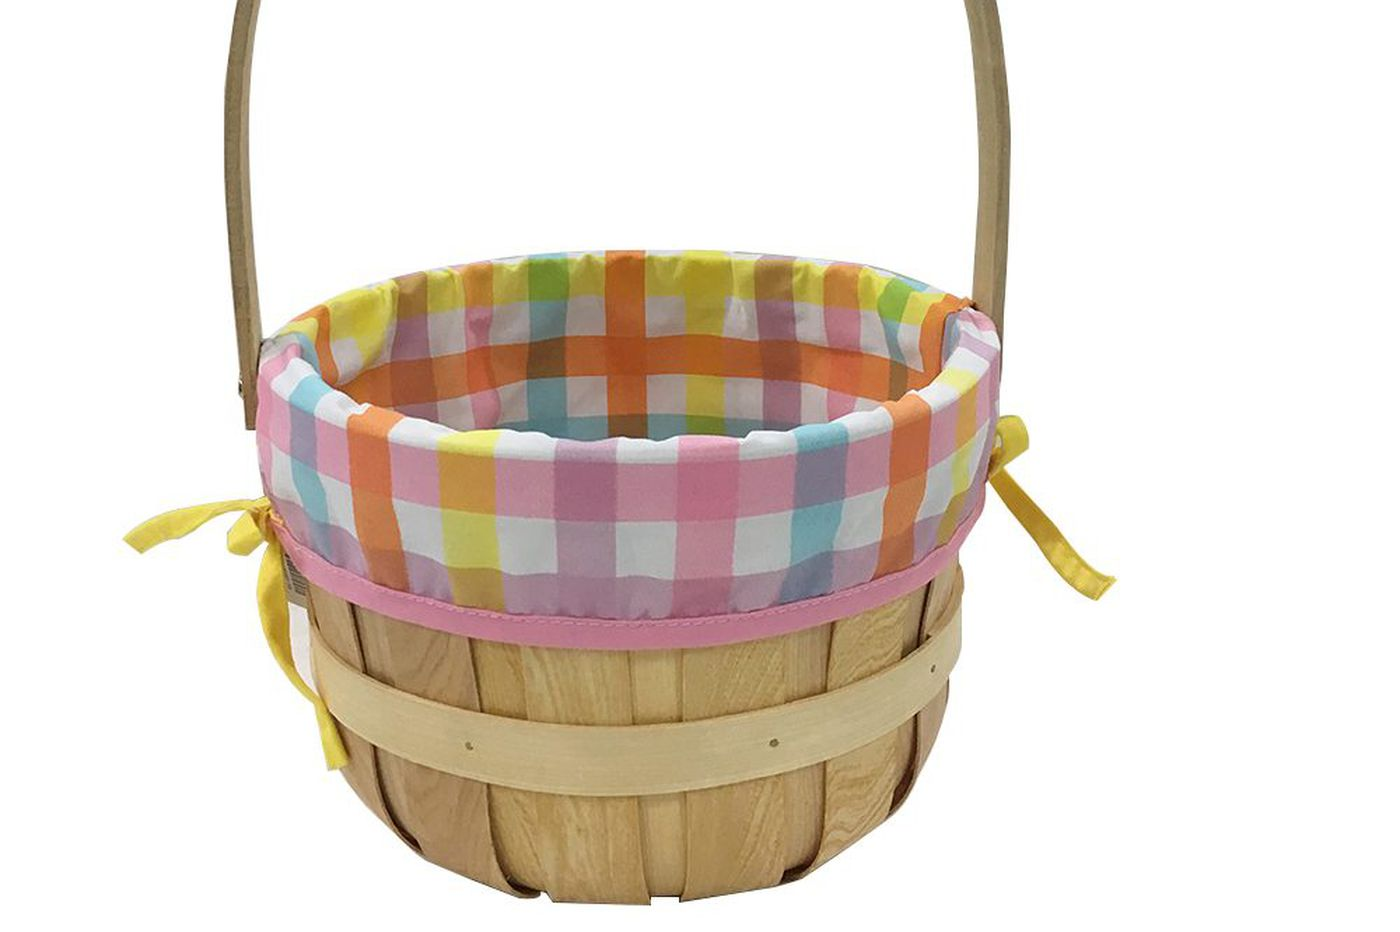 Easter baskets to fill with candy and gifts